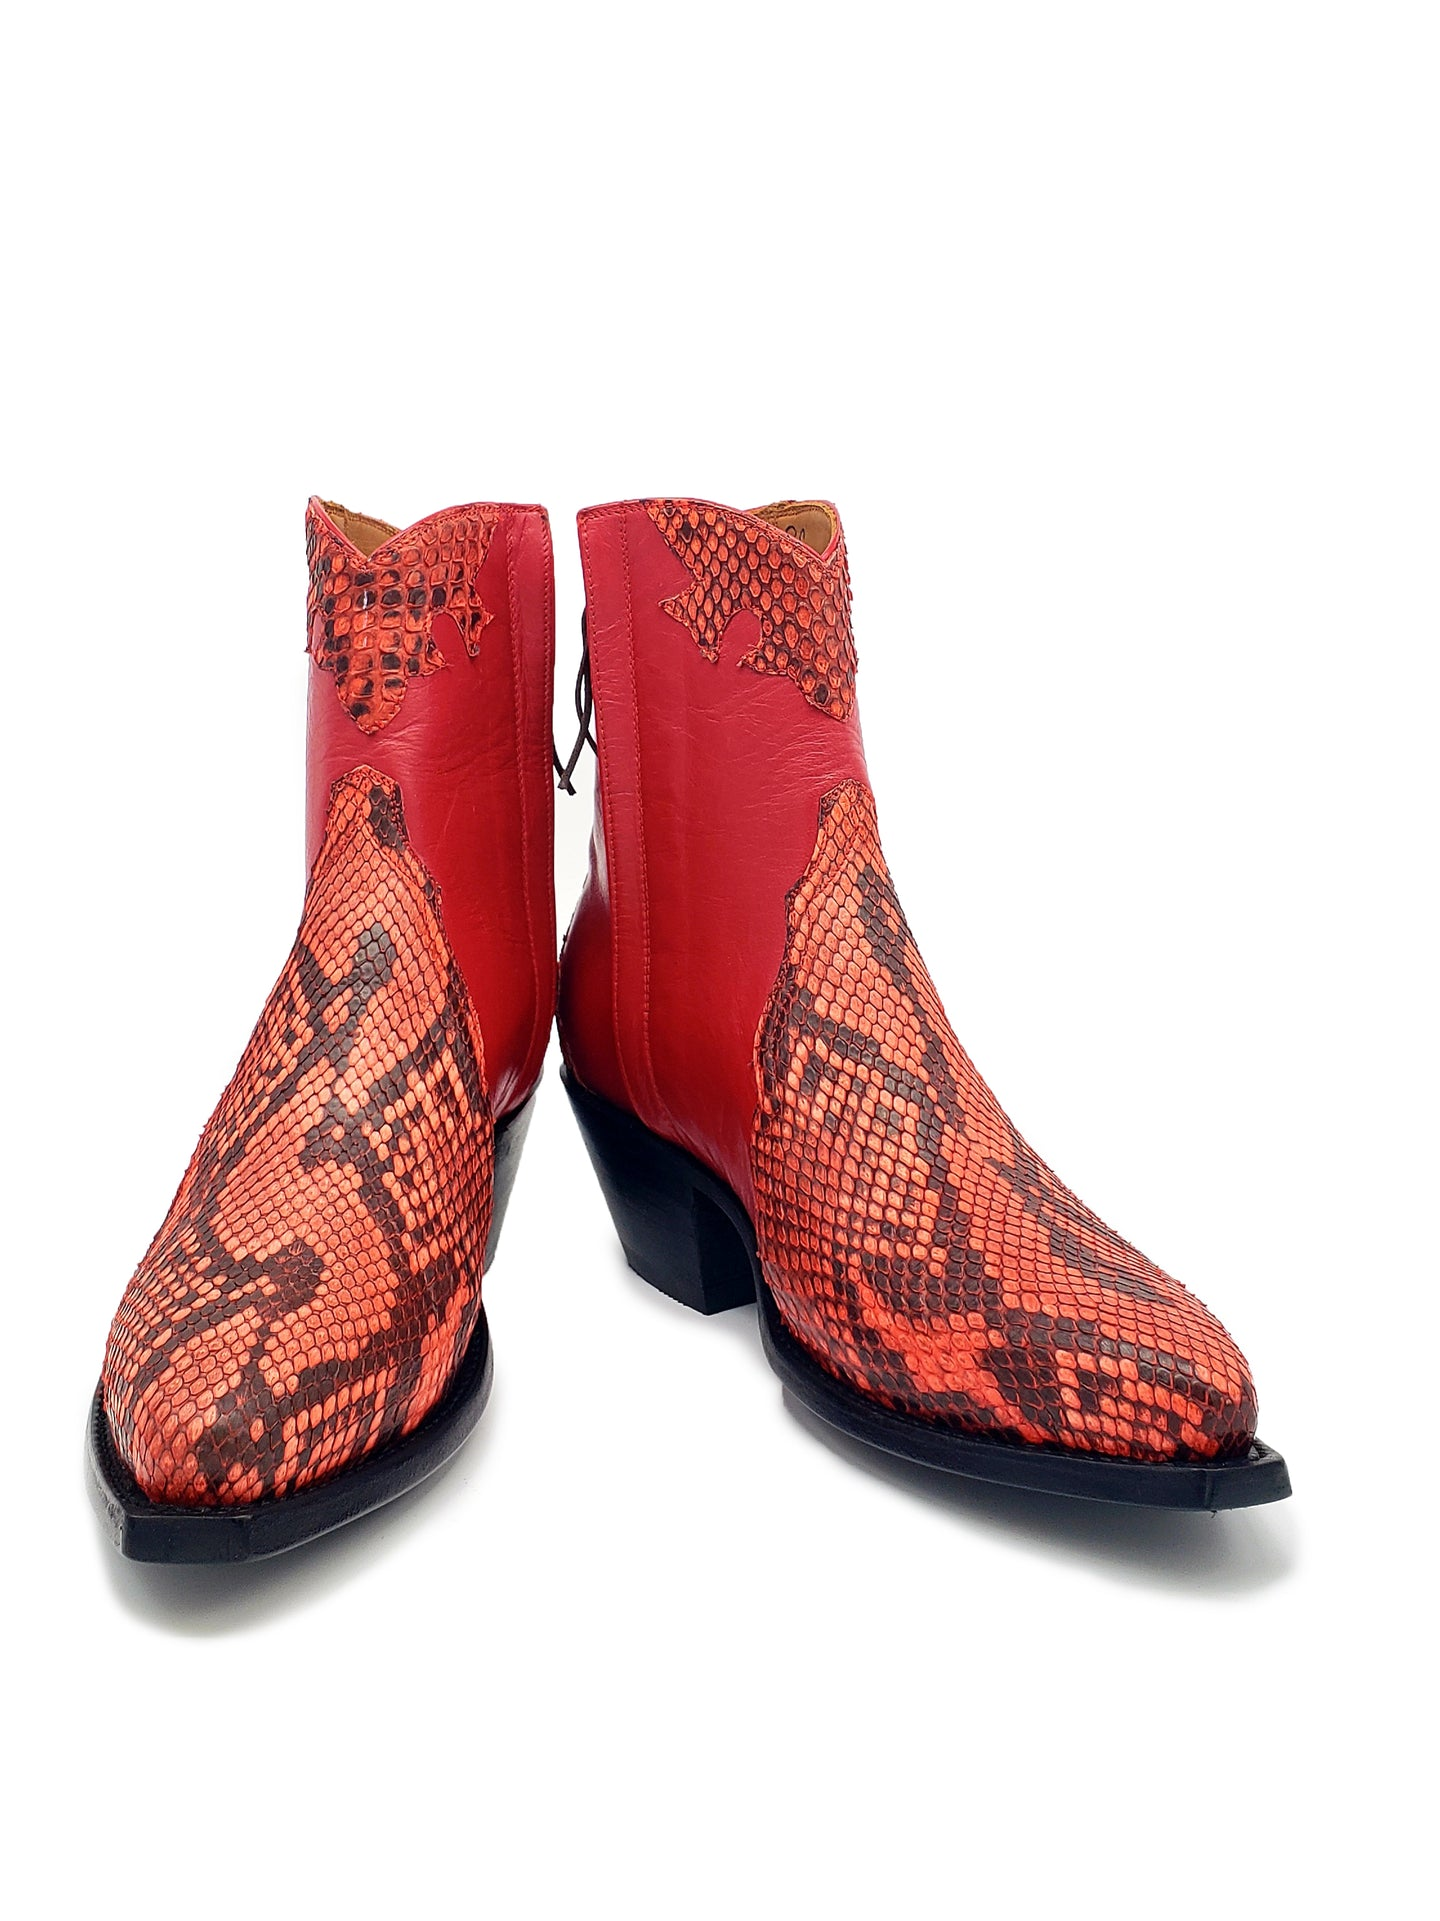 Ready To Wear Genuine Burmese Python & Kidd Ankle Boots with an X5/8